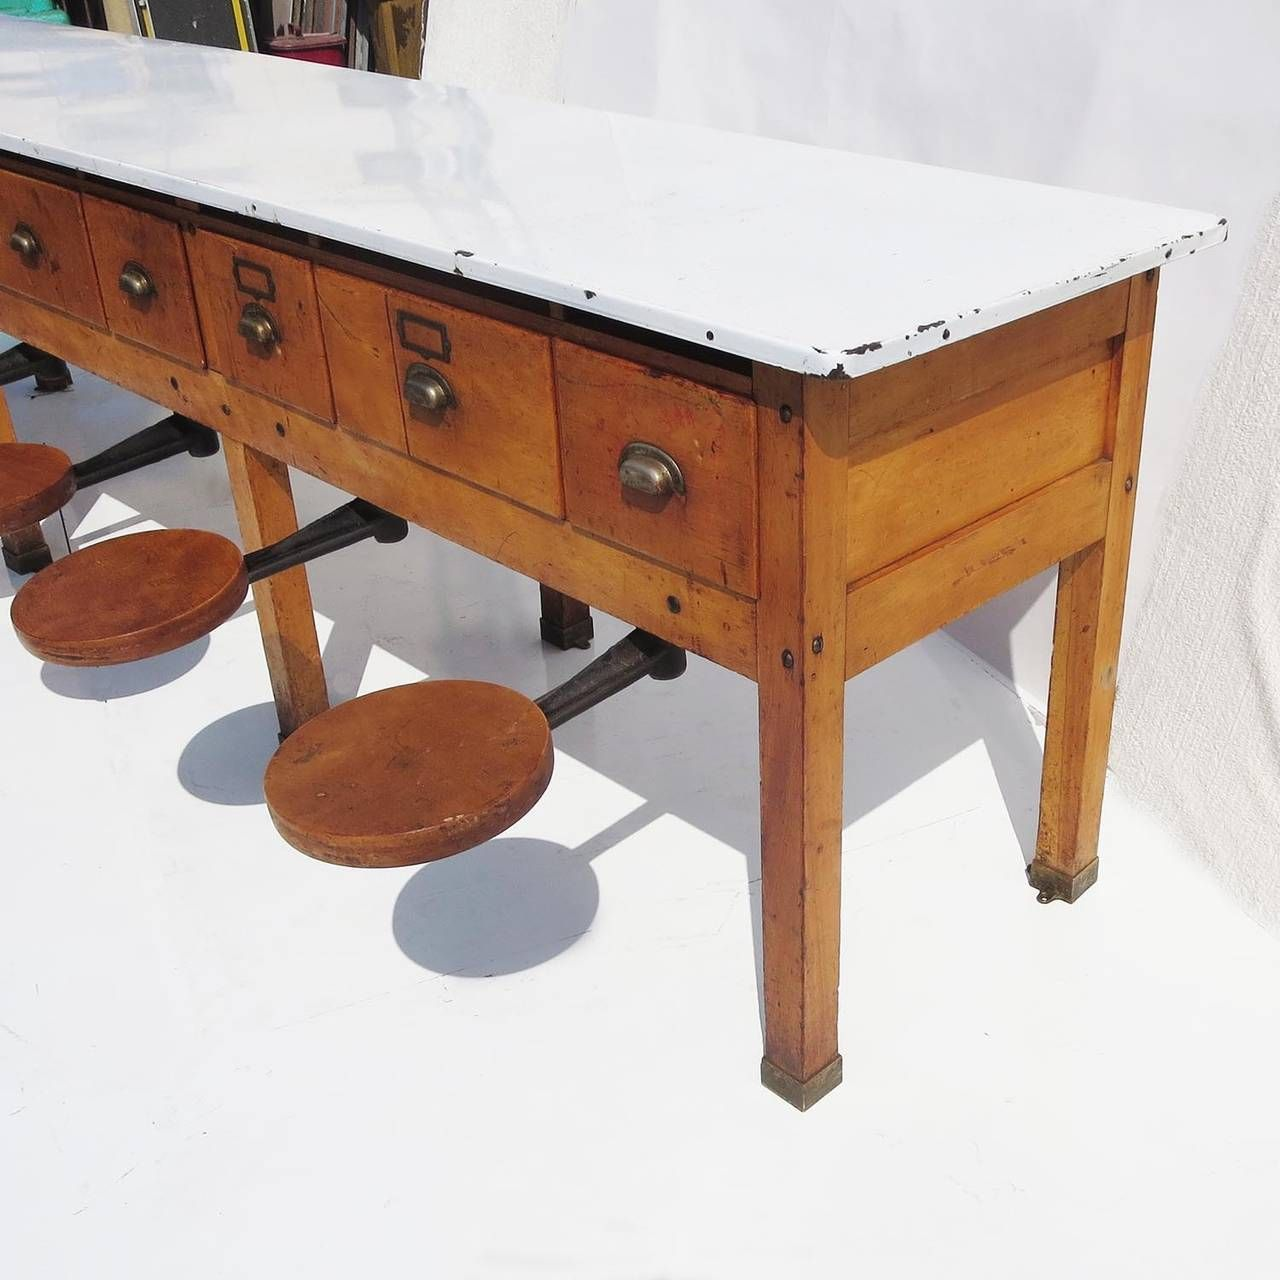 Early 20th Century Institutional Work Table With Pull Out Seats